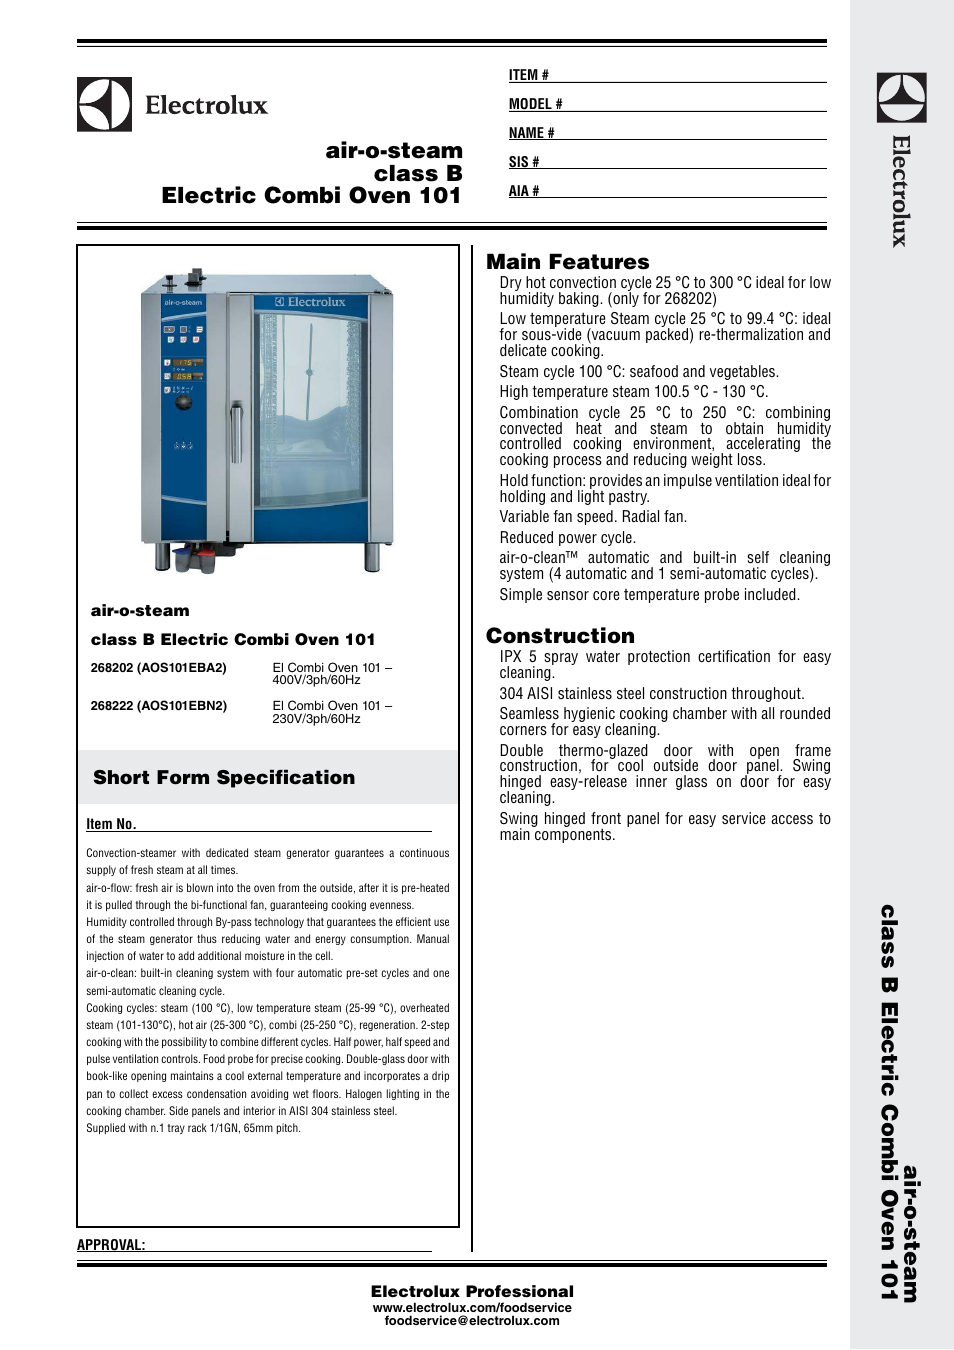 Electrolux air-o-steam class B Electric Combi Oven 101 268202 User Manual |  3 pages